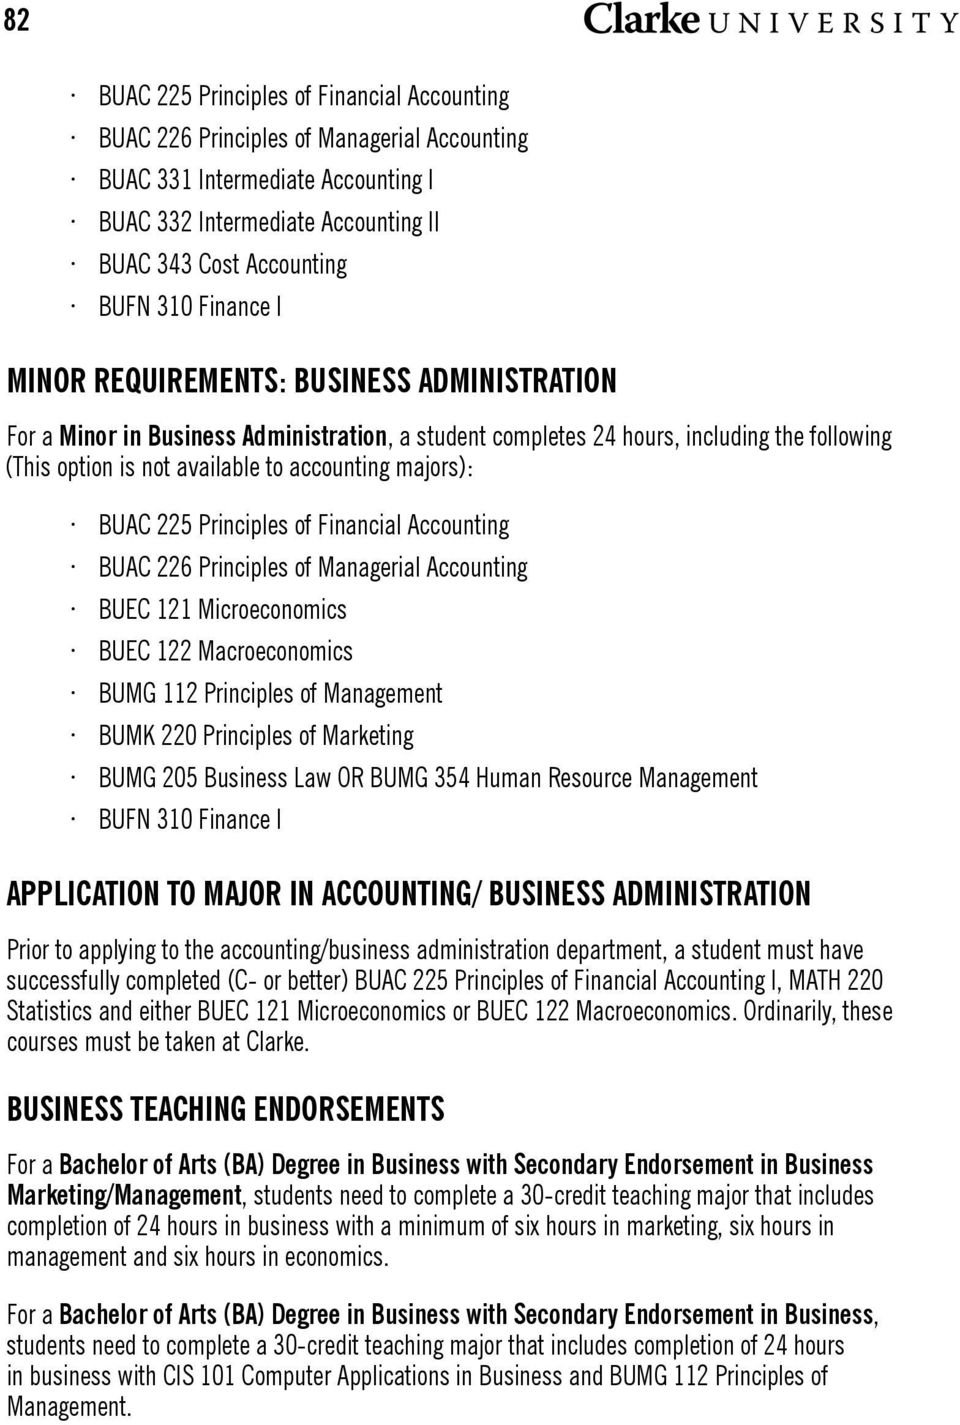 majors): BUAC 225 Principles of Financial Accounting BUAC 226 Principles of Managerial Accounting BUEC 121 Microeconomics BUEC 122 Macroeconomics BUMG 112 Principles of Management BUMK 220 Principles